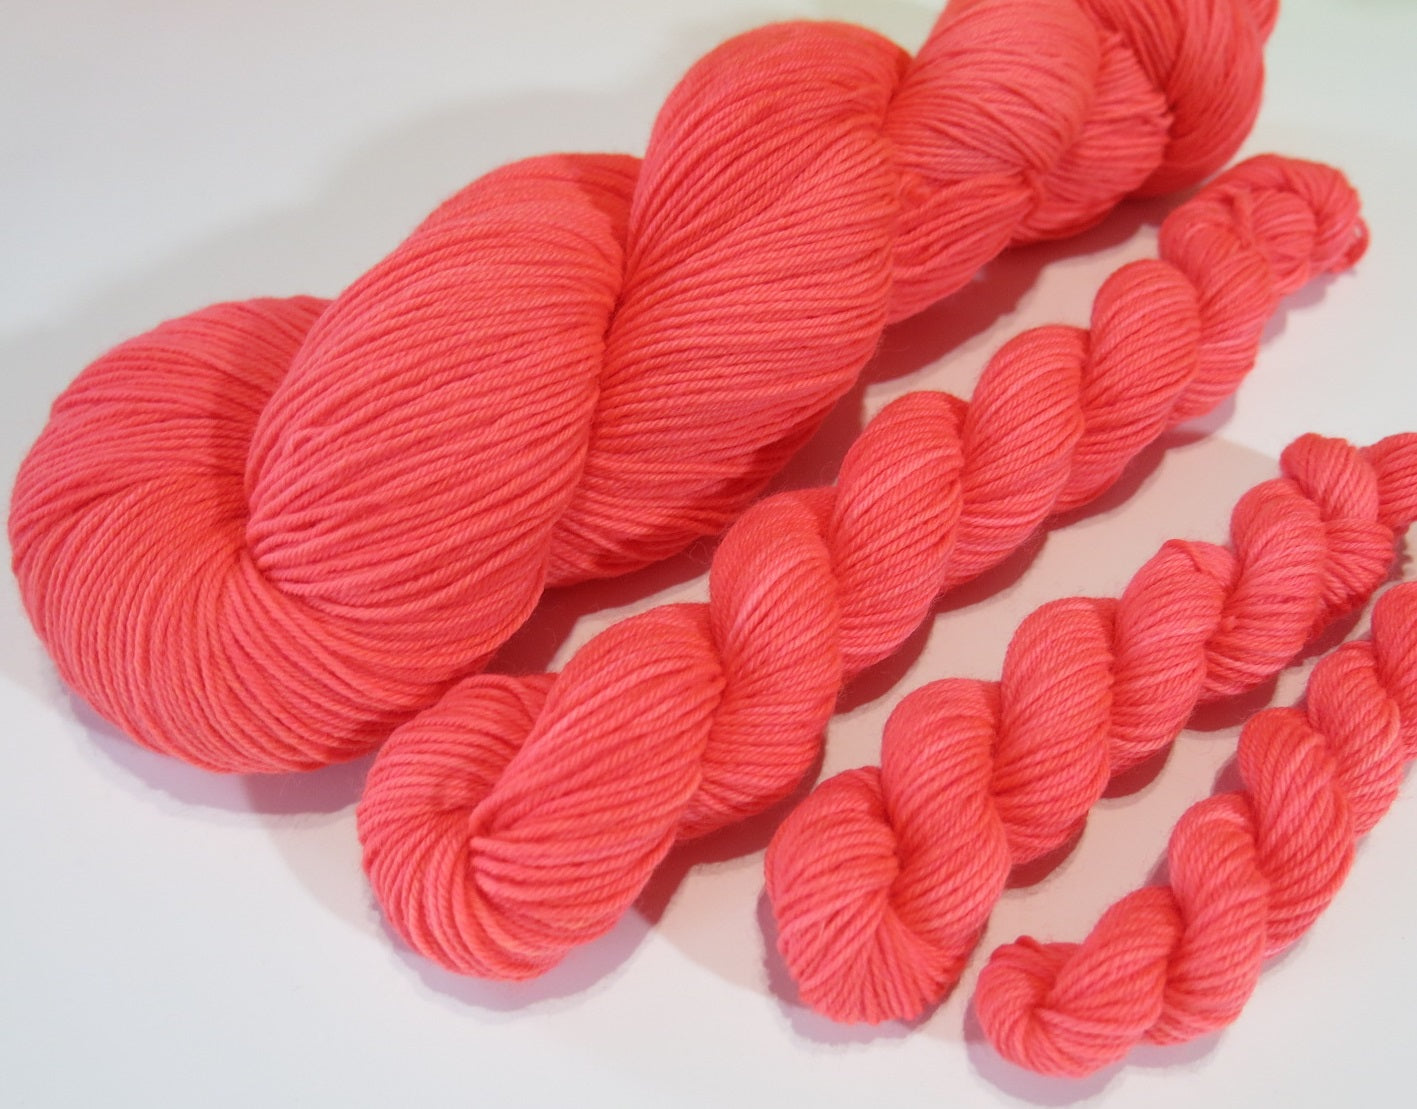 indie dyed uv reactive orange sock yarn for knitting and crochet